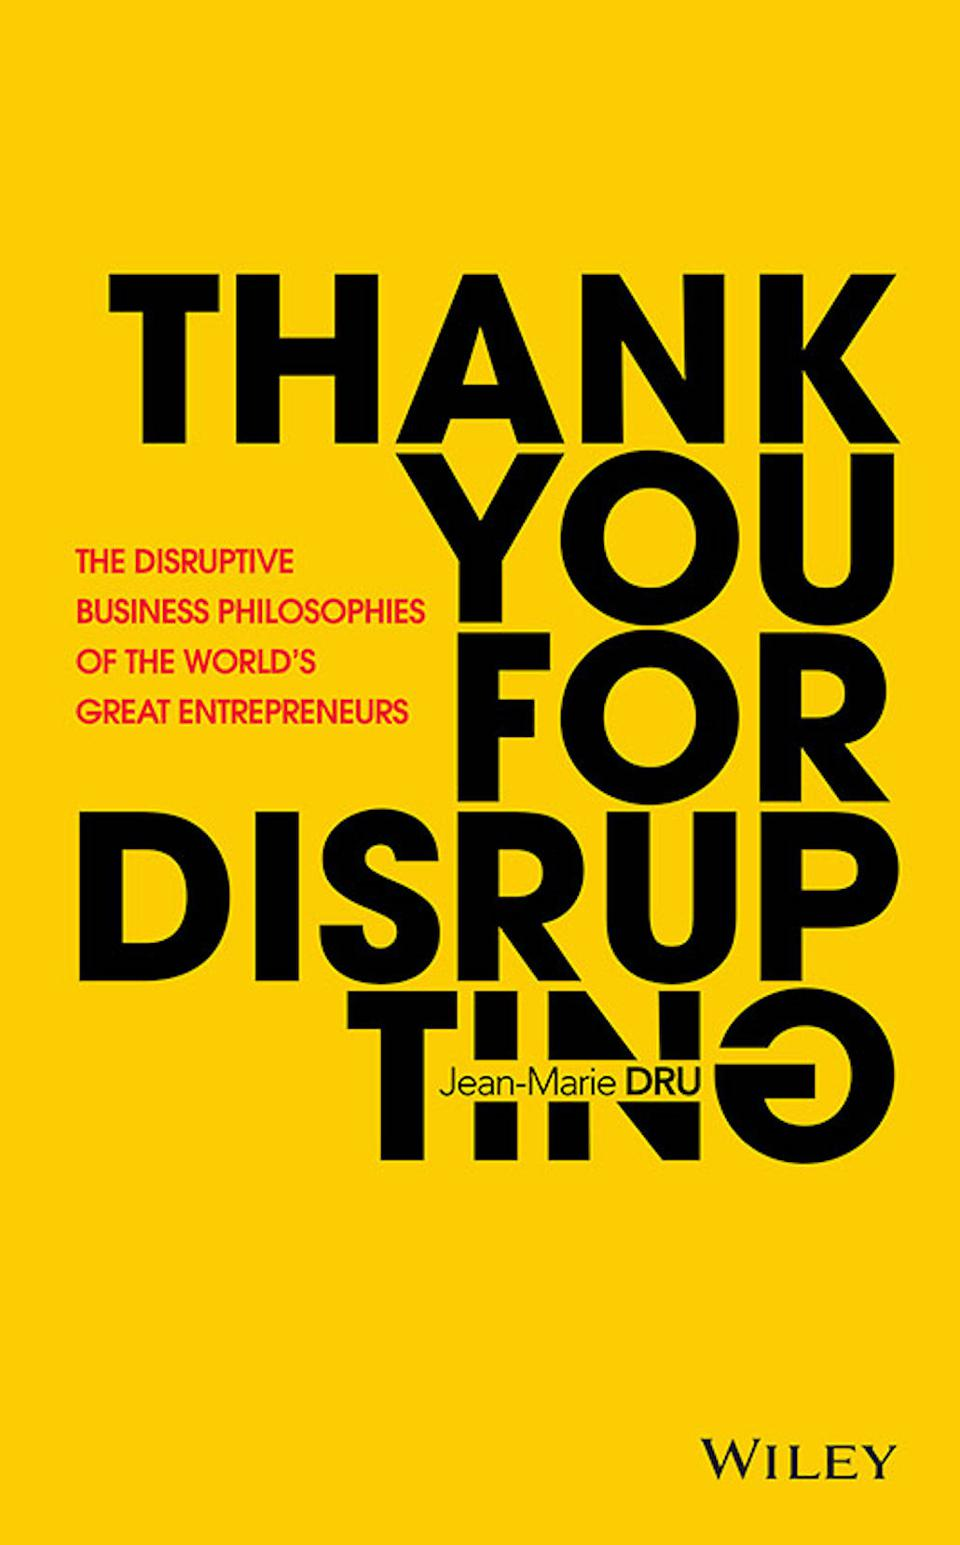 Thank You for Disrupting: The Disruptive Business Philosophies of The World's Great Entrepreneurs by Jean-Marie Dru